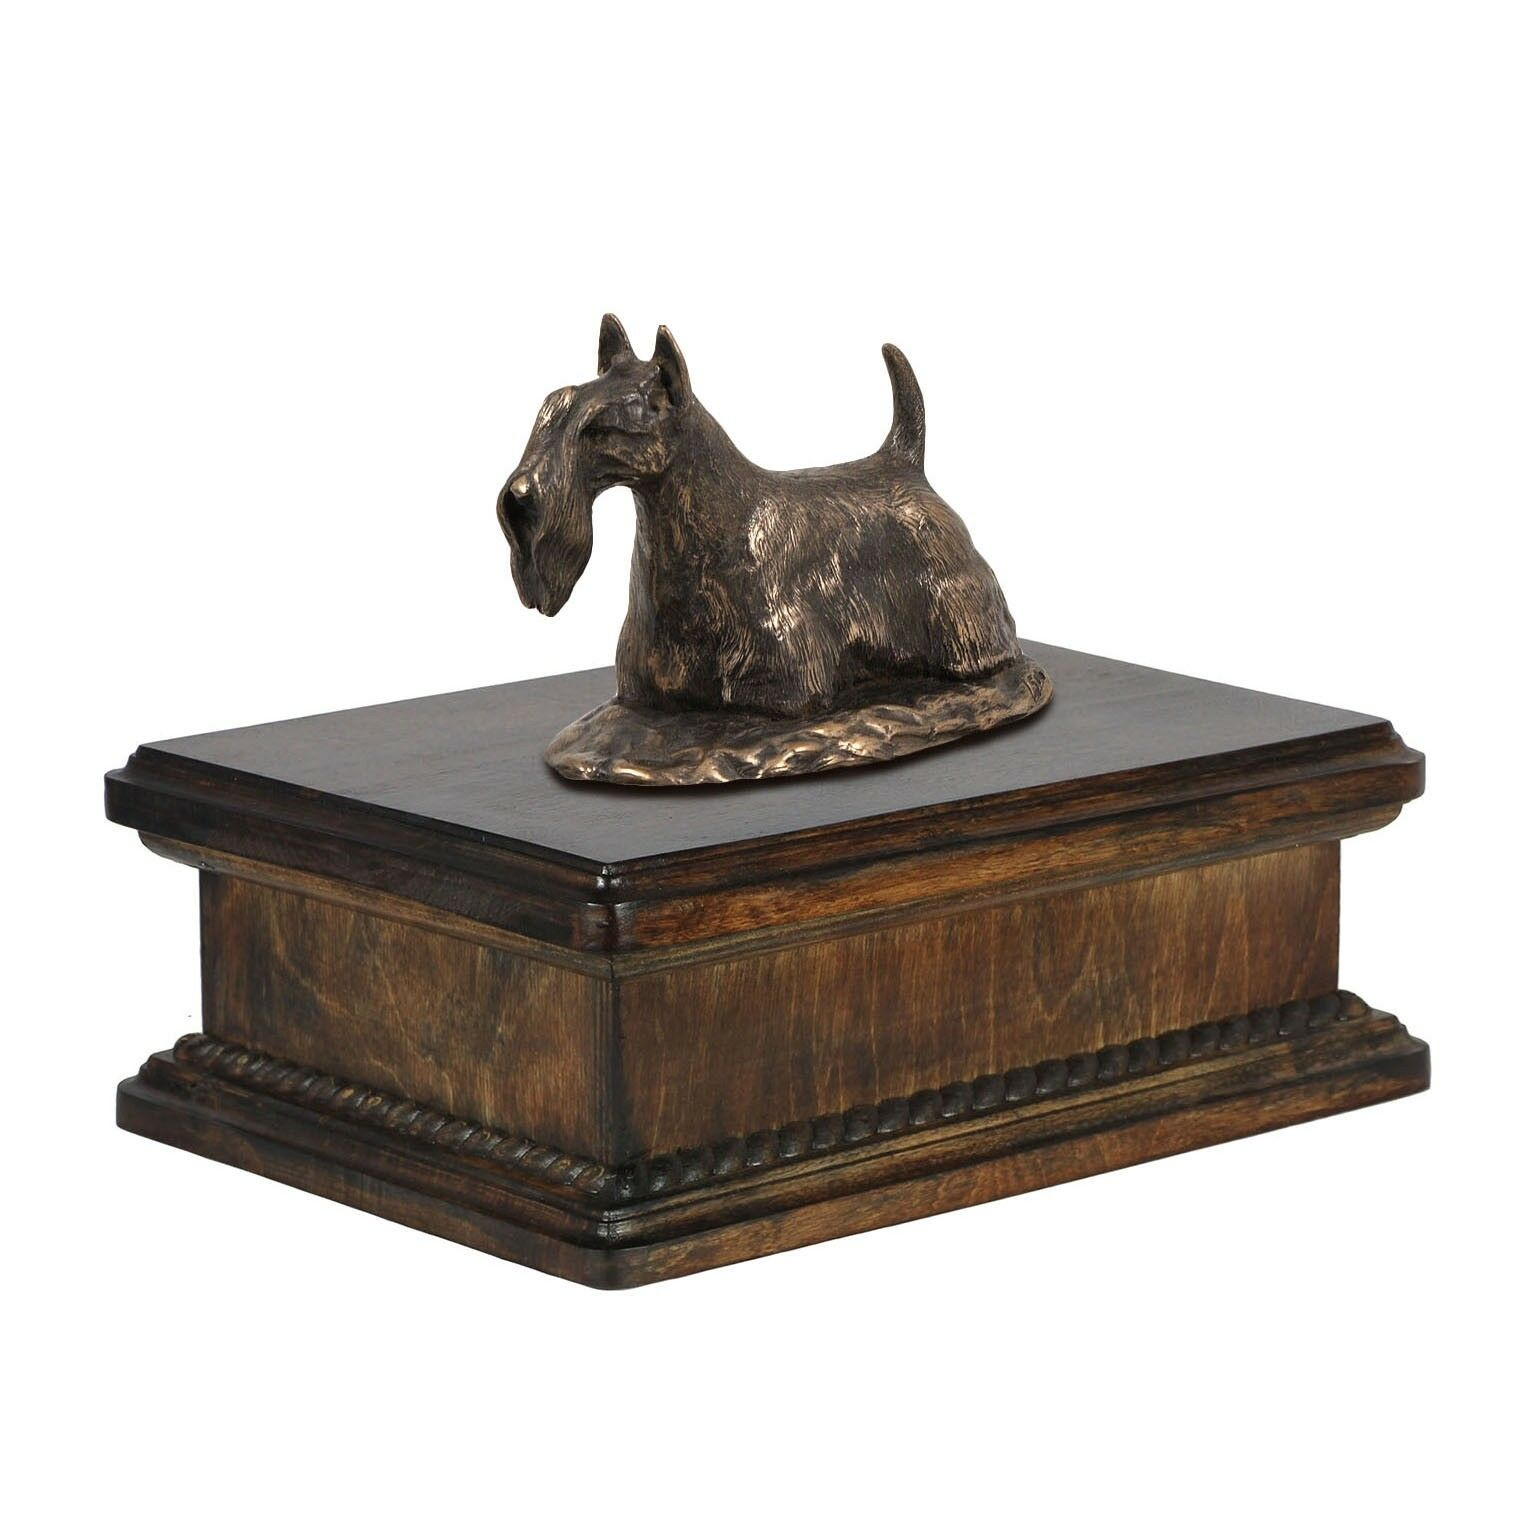 Scottish Terrier - exclusive urn with dog statue, High Quality, Art Dog